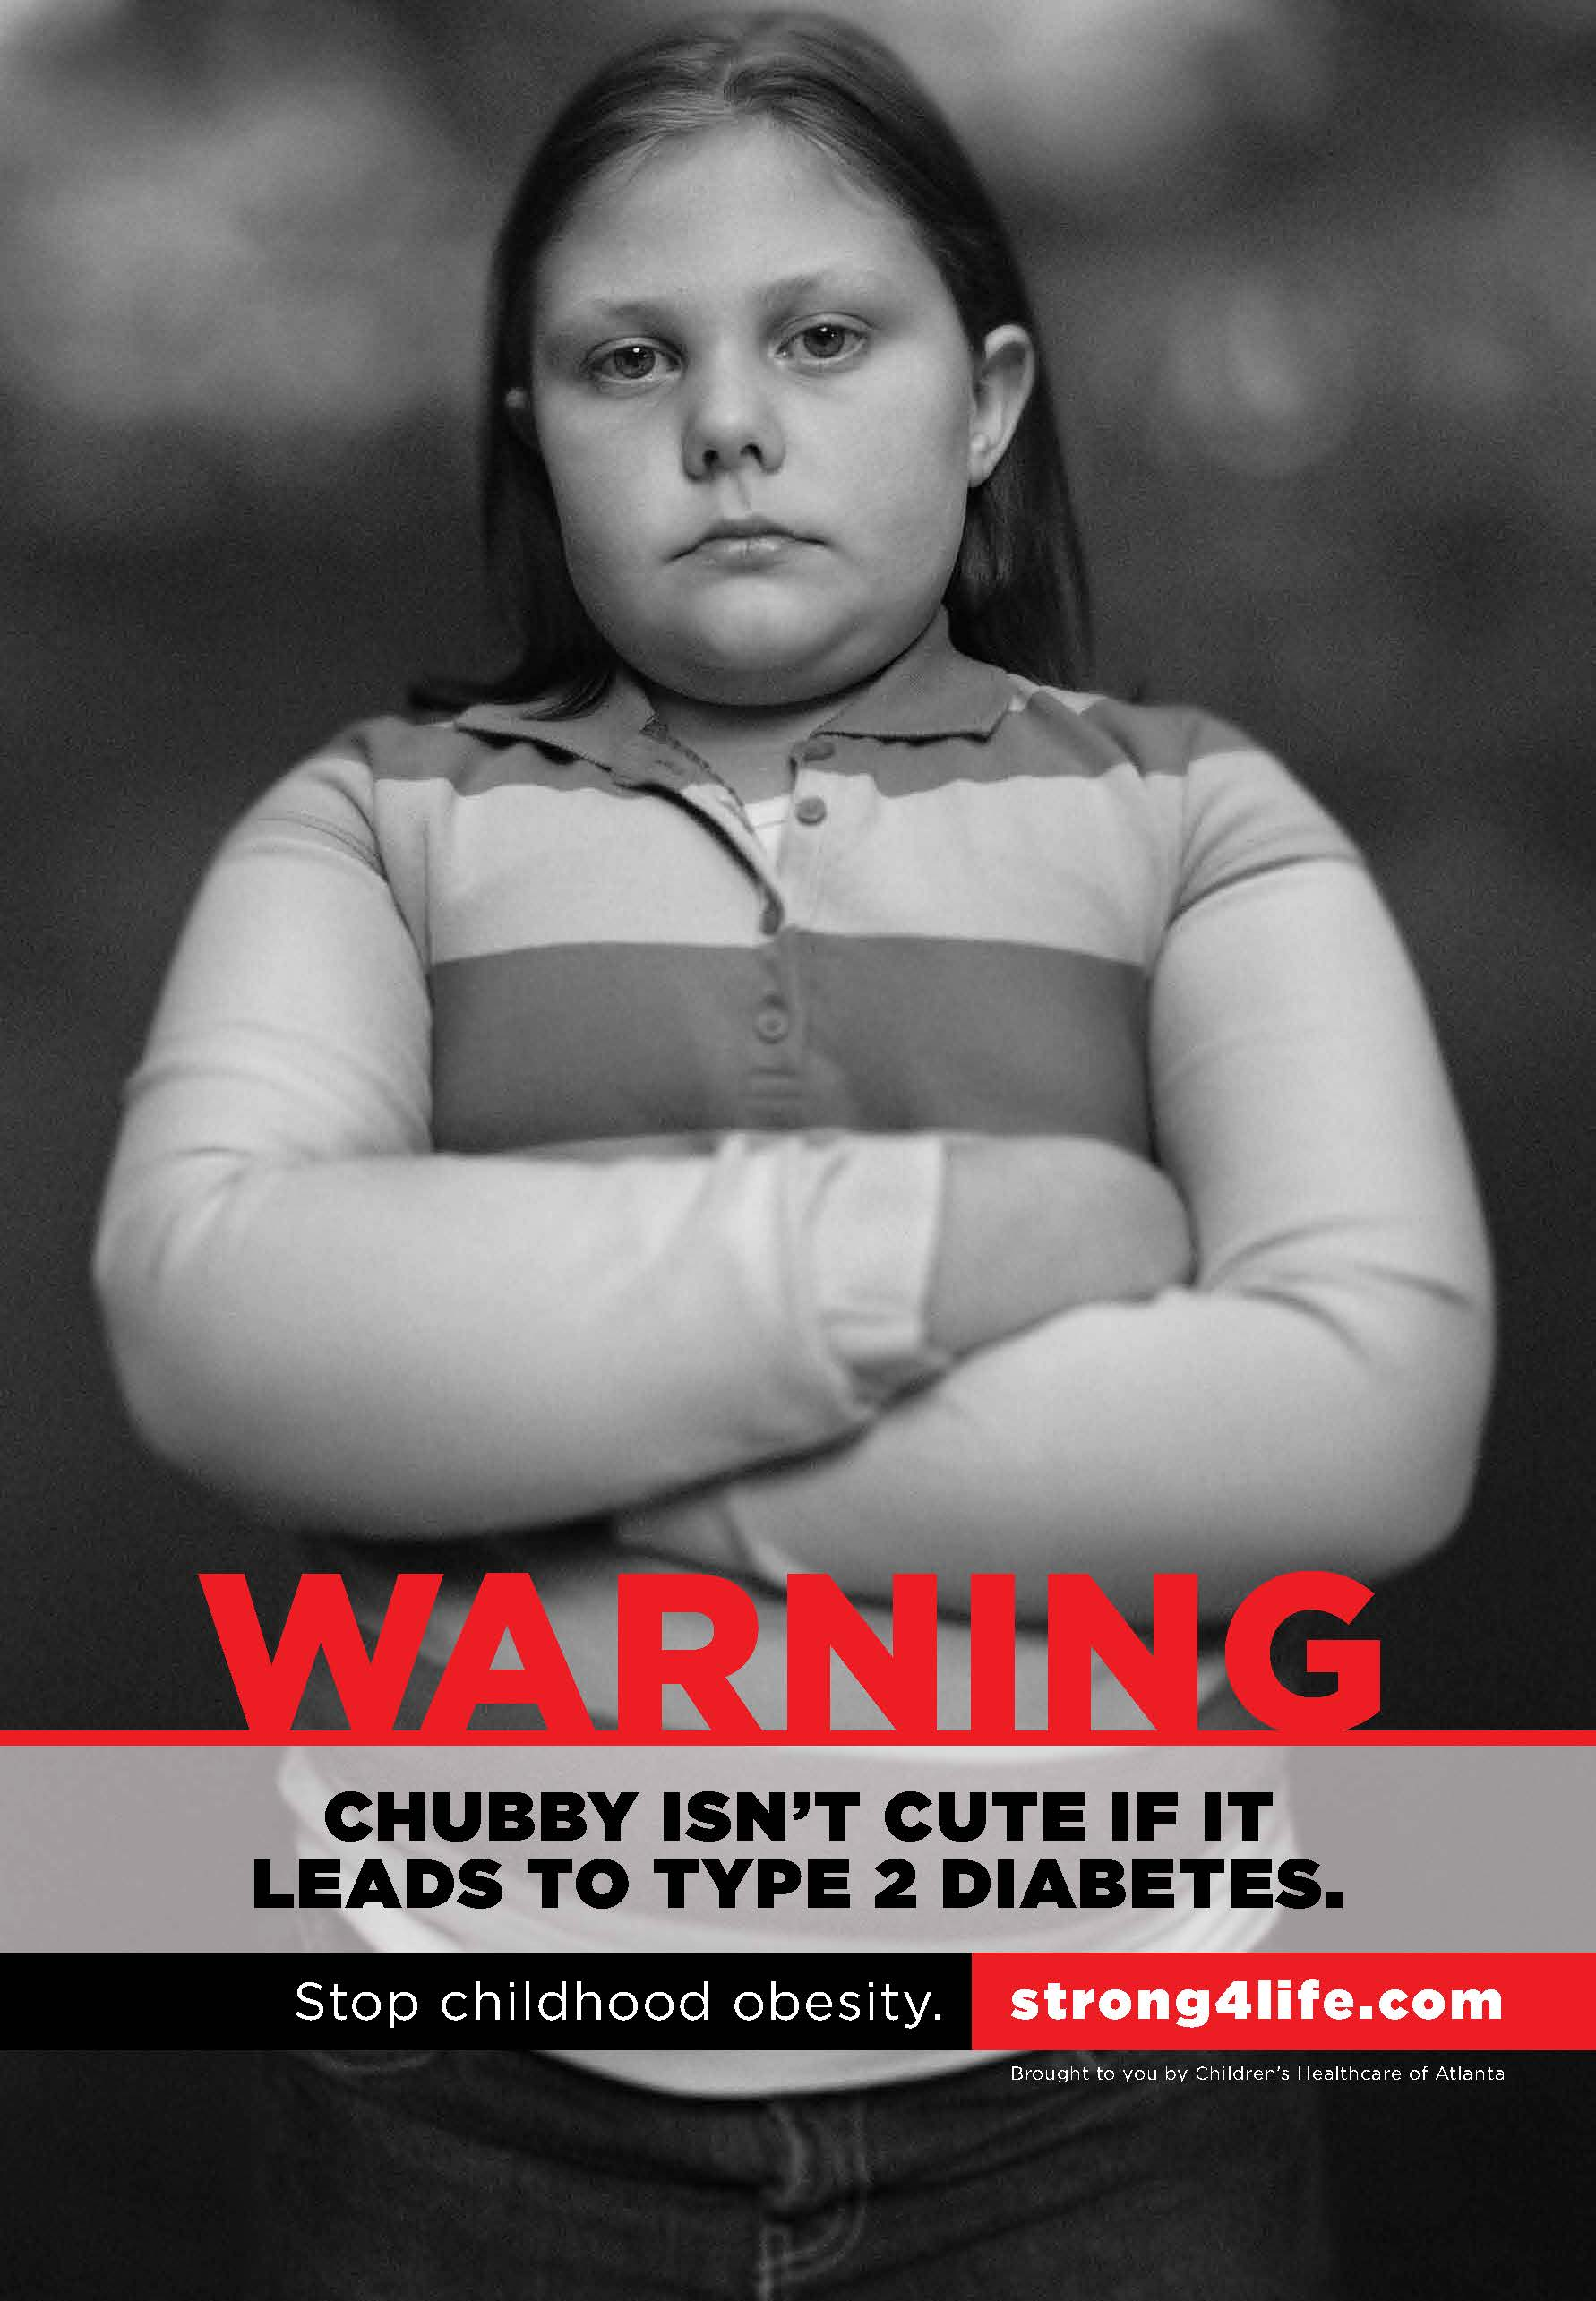 Shaming Obesity Contexts : INB Obesity ad campaign from contexts.org size 1782 x 2569 jpeg 209kB